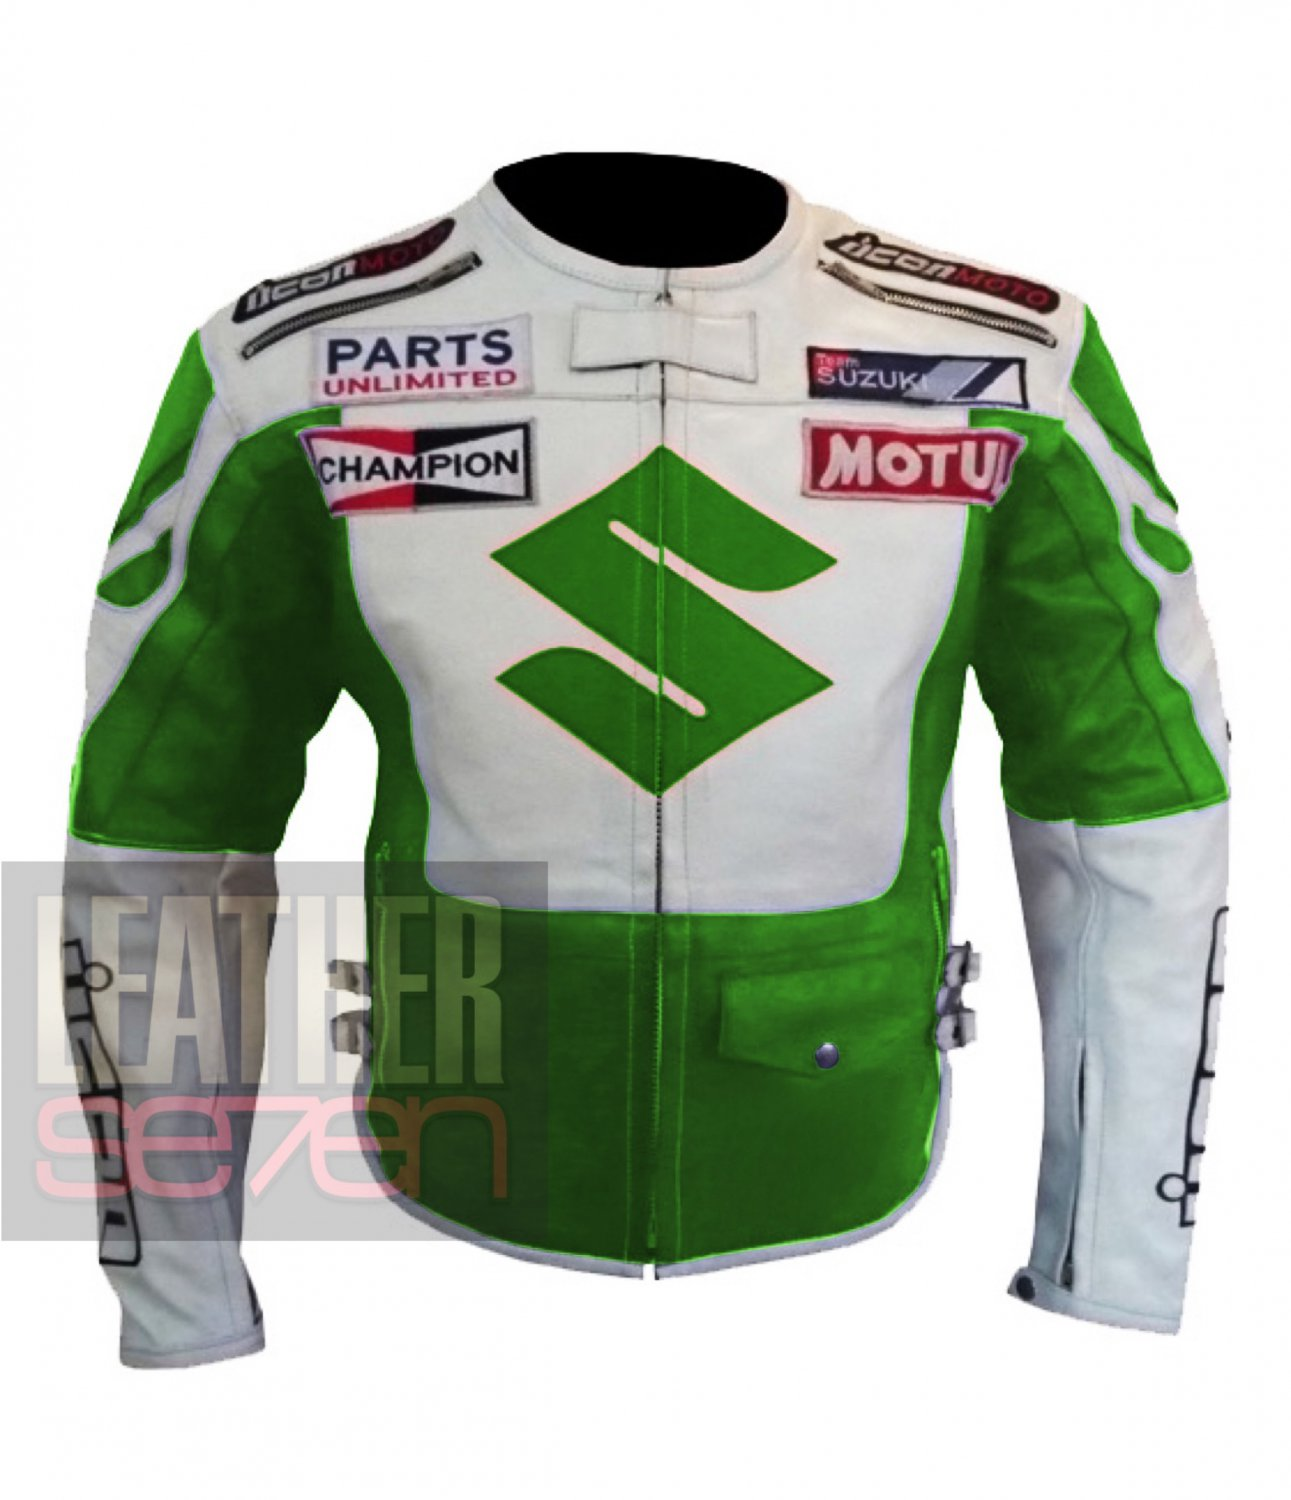 New Men's Pure Cowhide Leather Jacket Arrival ... Suzuki 4269 Icon Green Coat